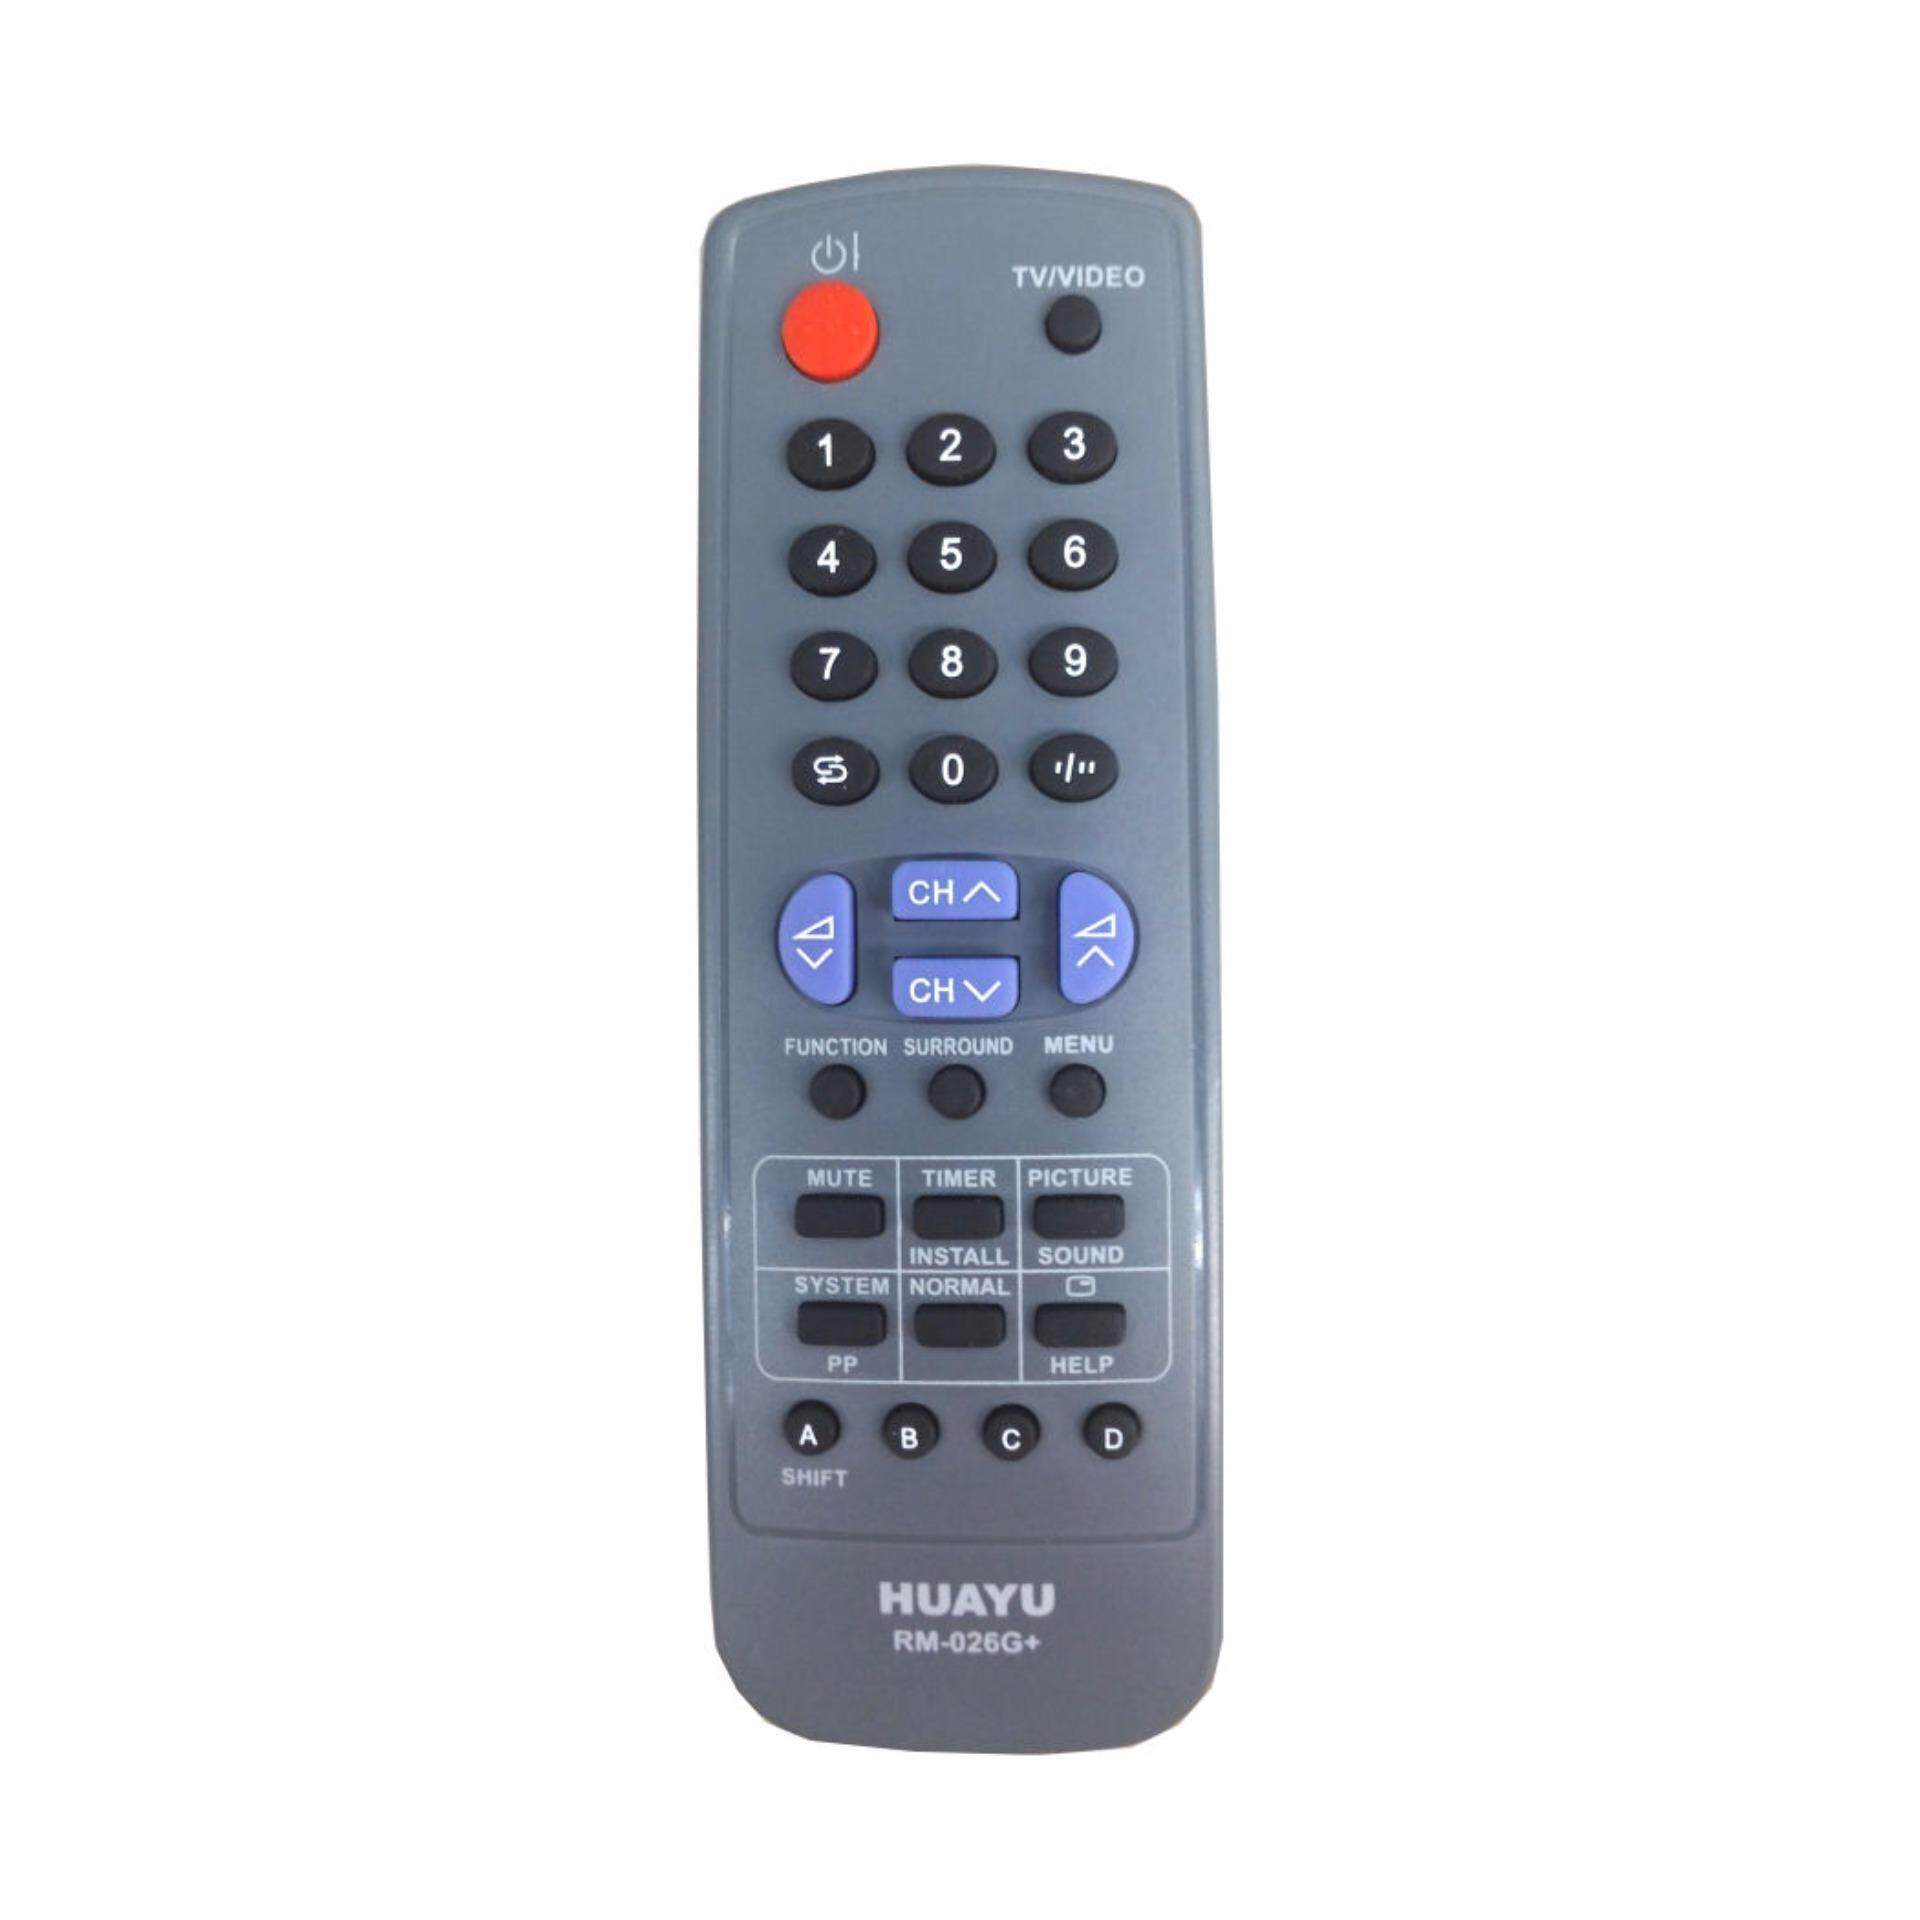 sharp tv remote. sharp tv remote